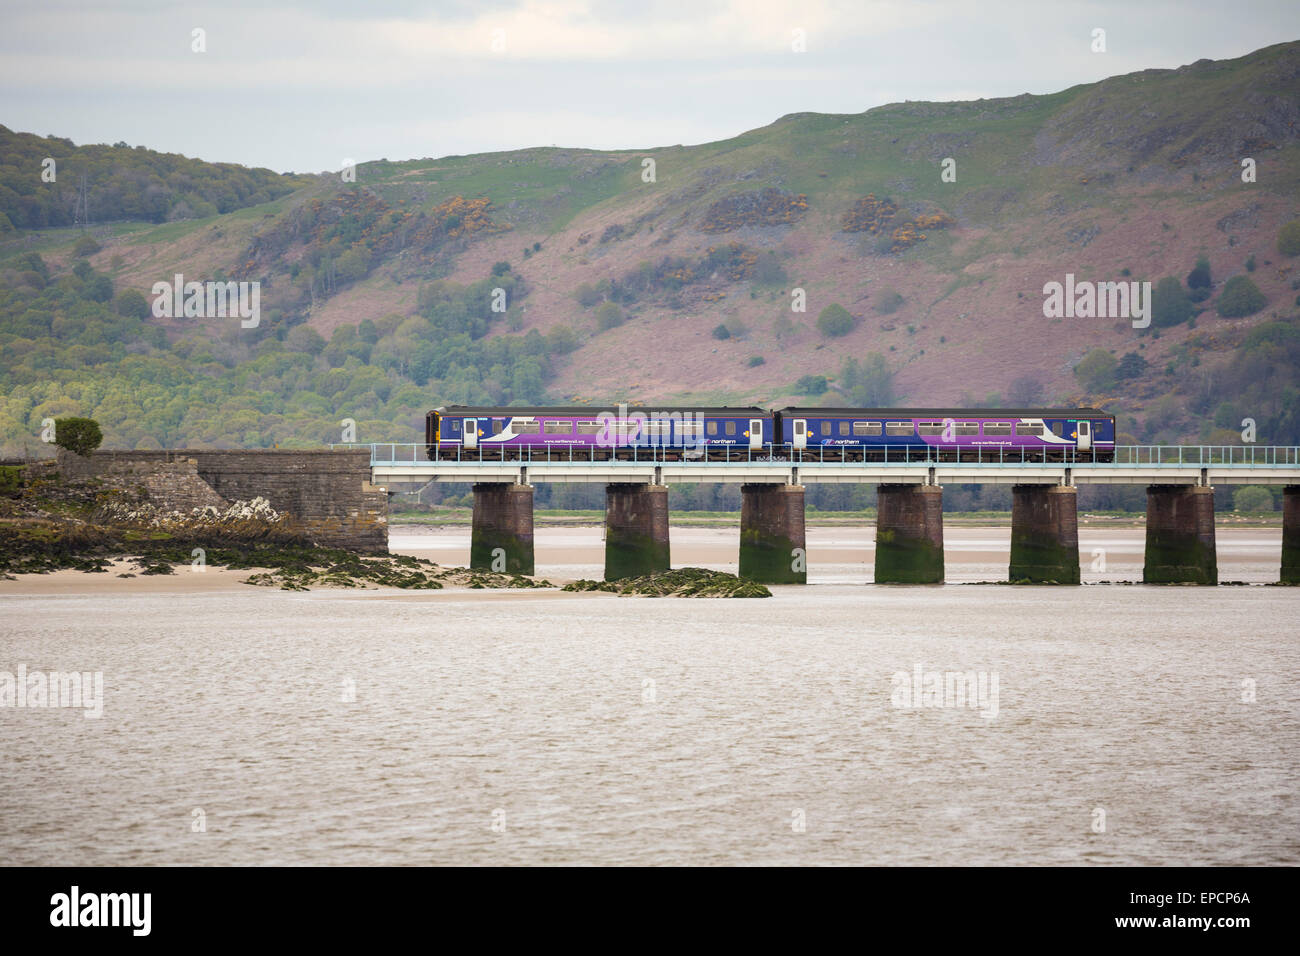 Northern Rail diesel multiple unit (DMU) on the Leven Viaduct, Cumbria - Stock Image